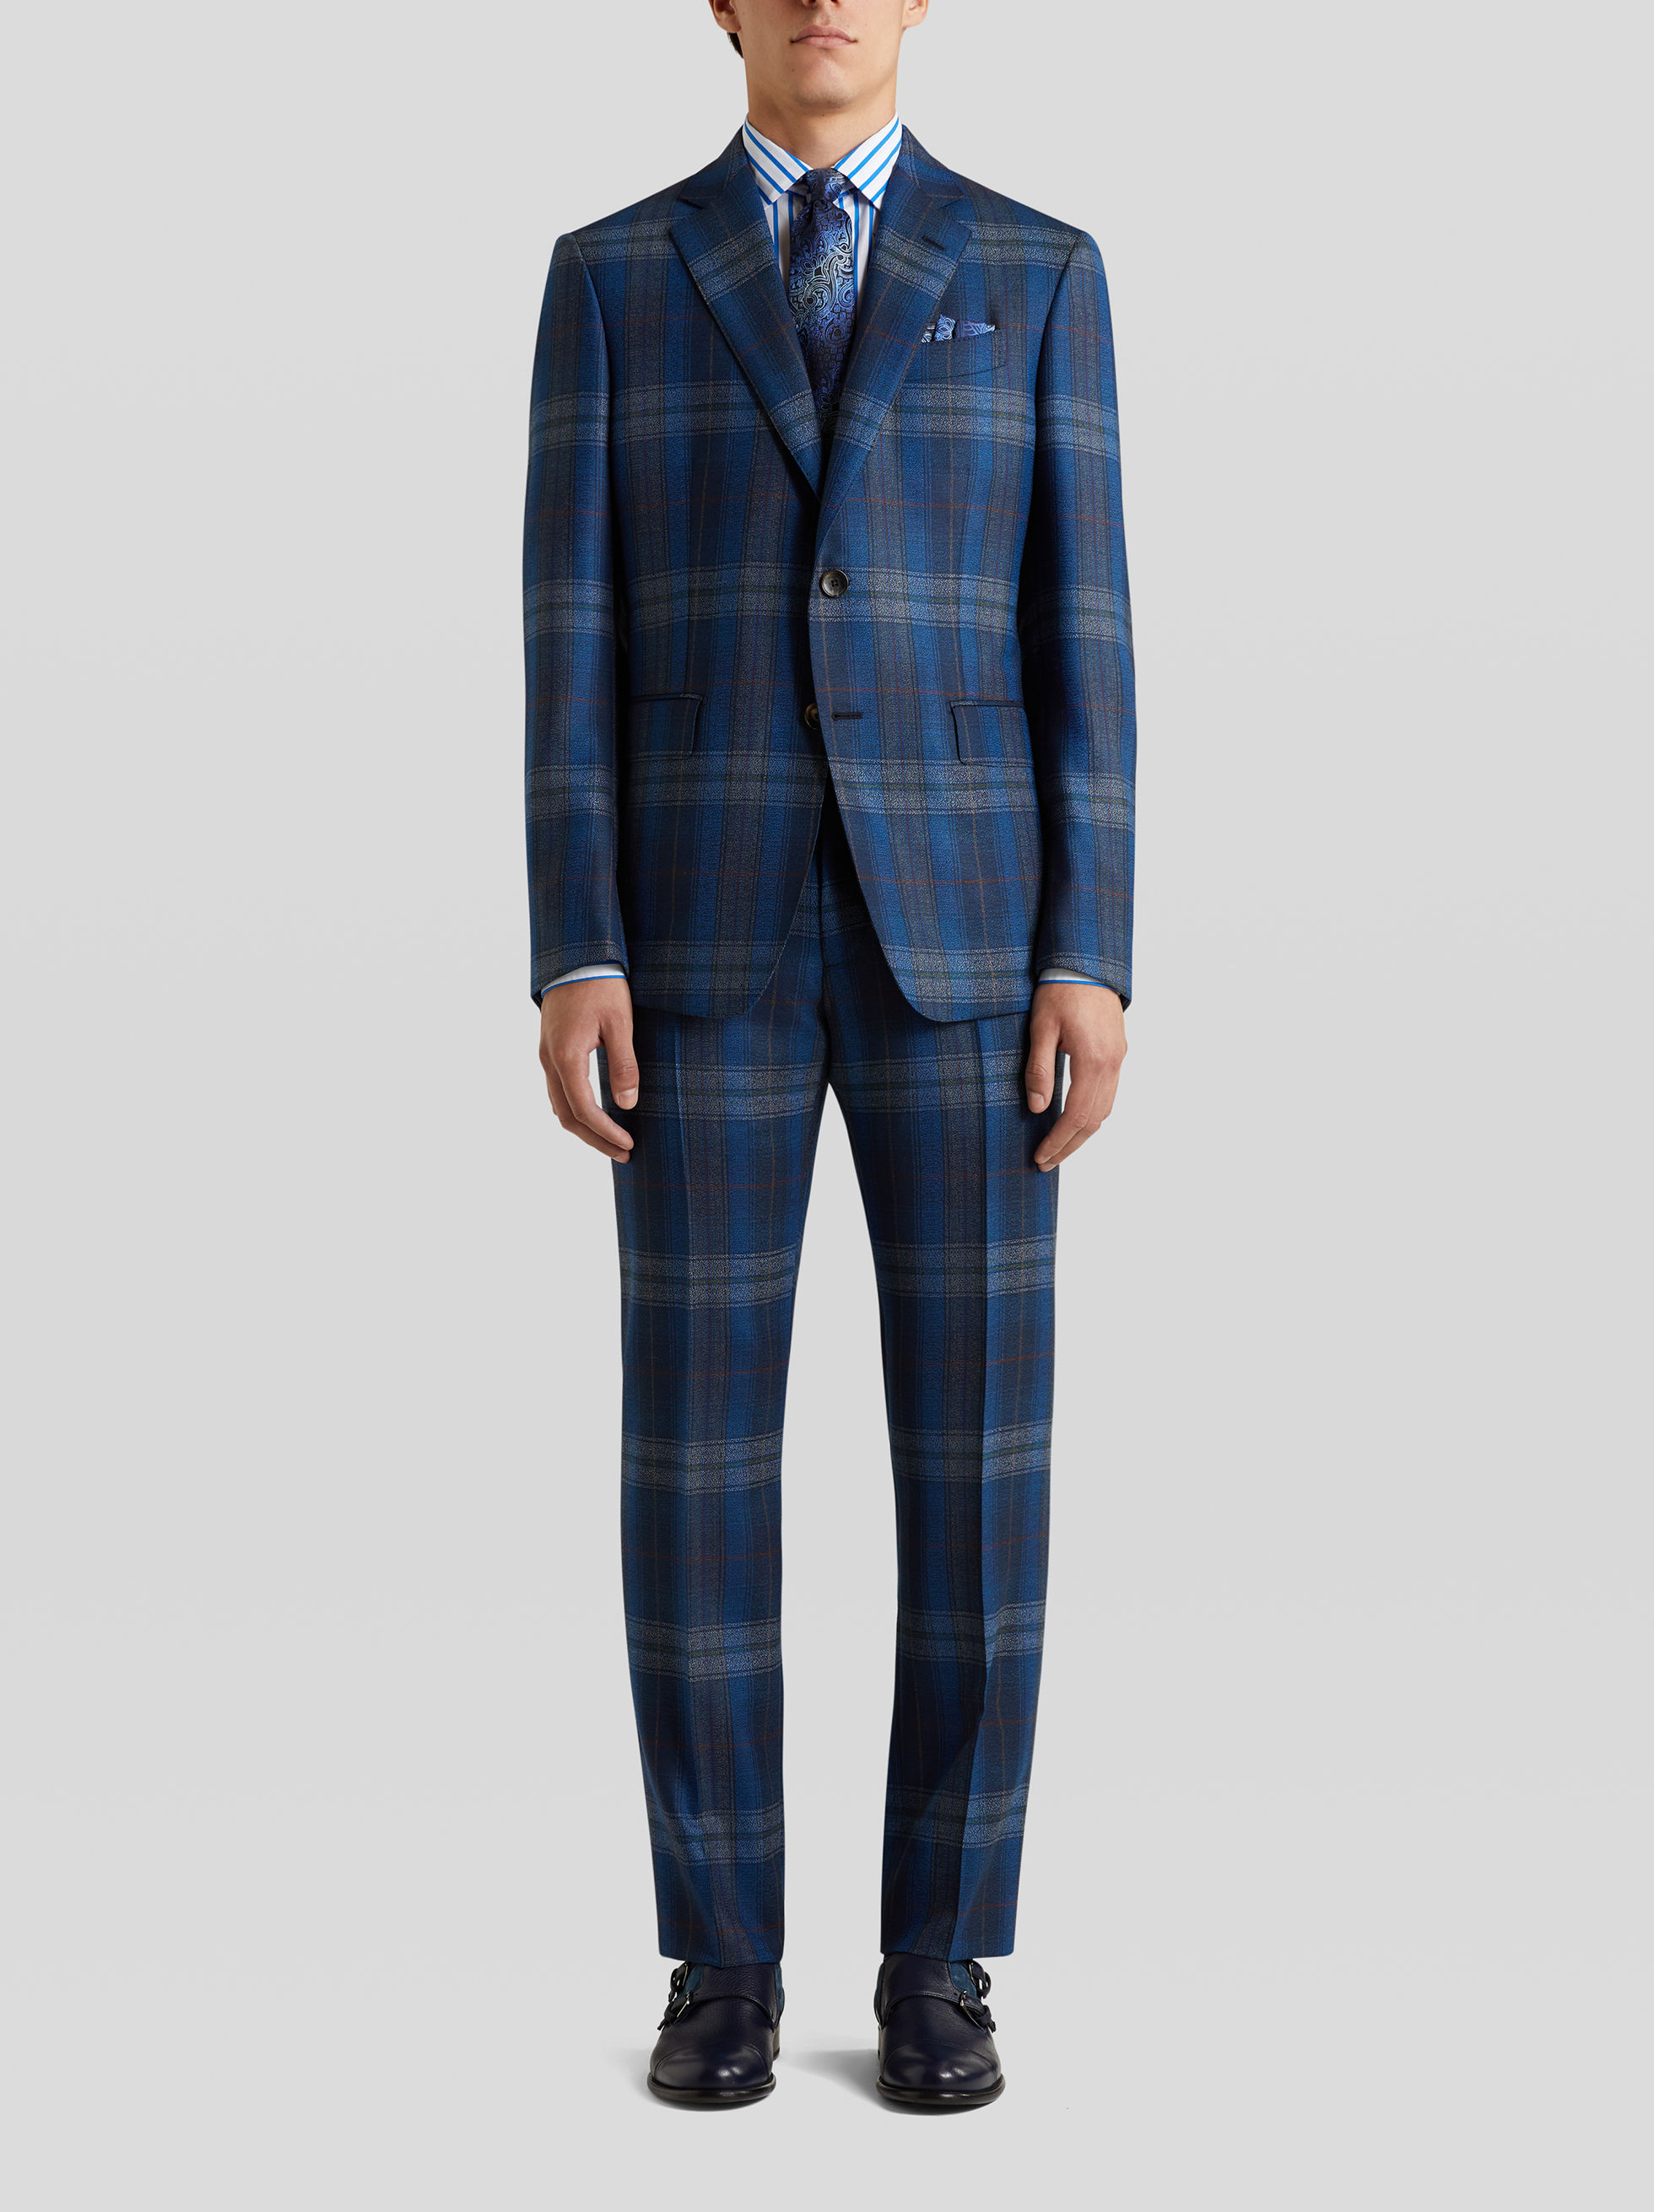 TAILORED CHECK SUIT